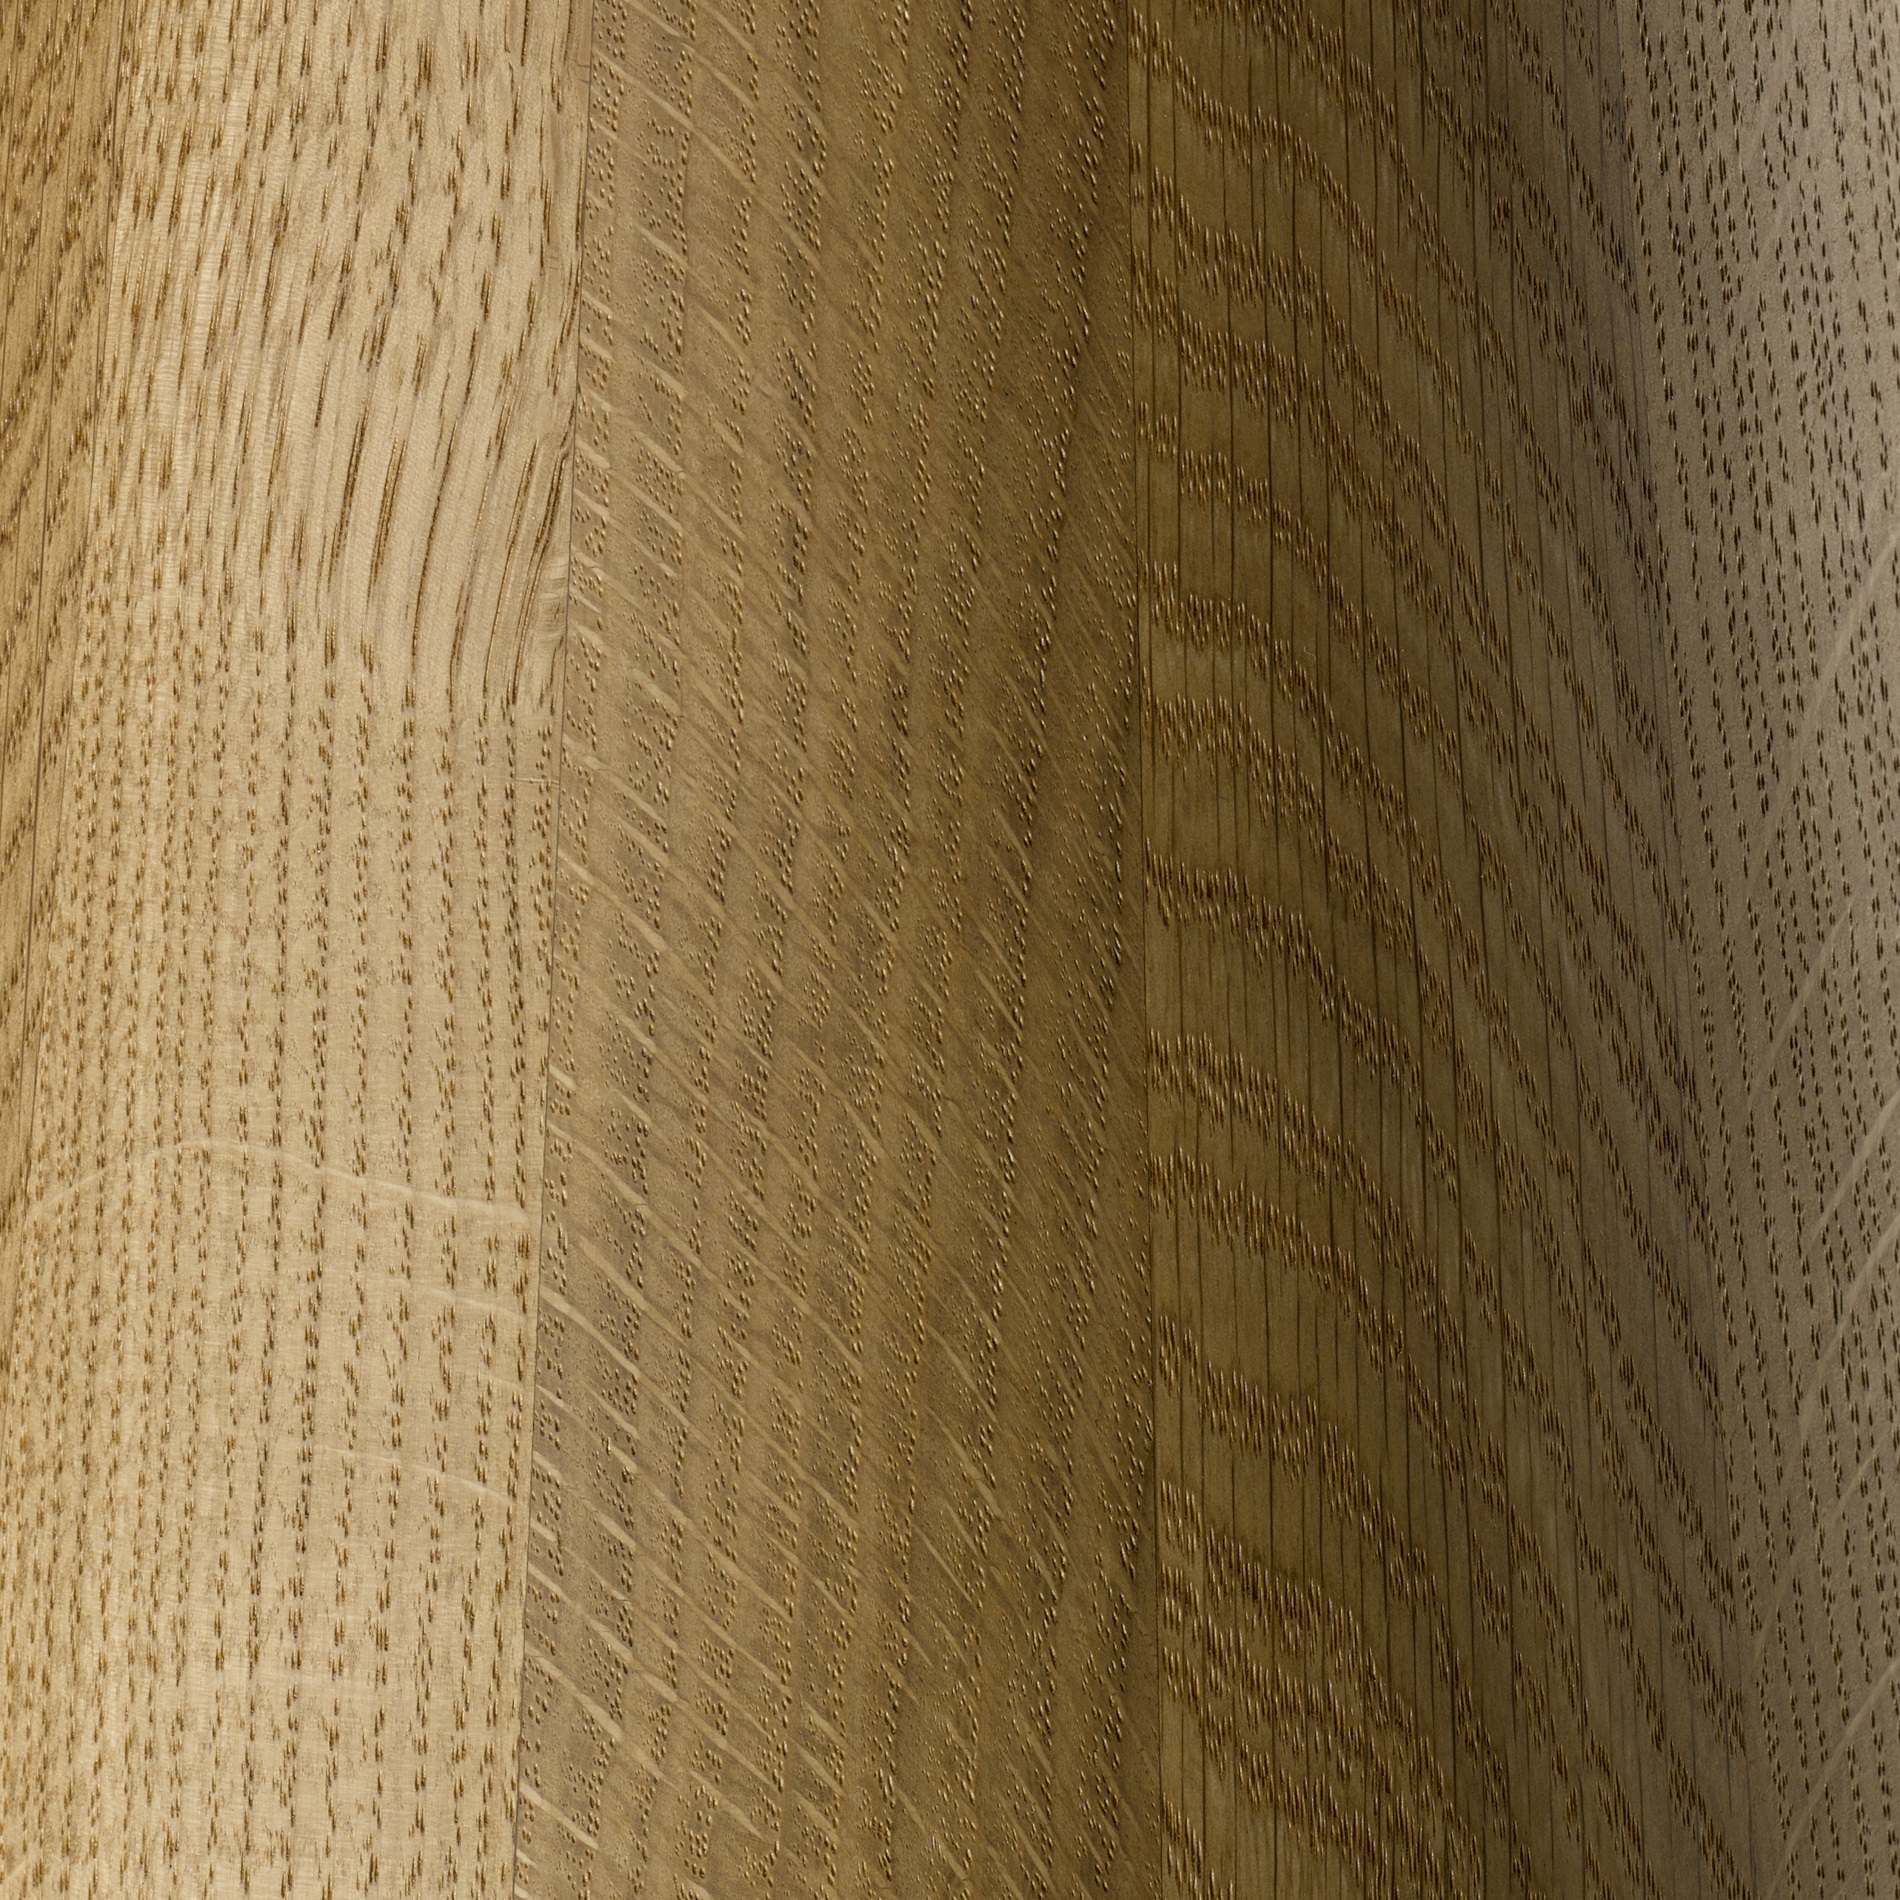 OILED OAK - Natural and finished with a clear microporous hard wax / oil.